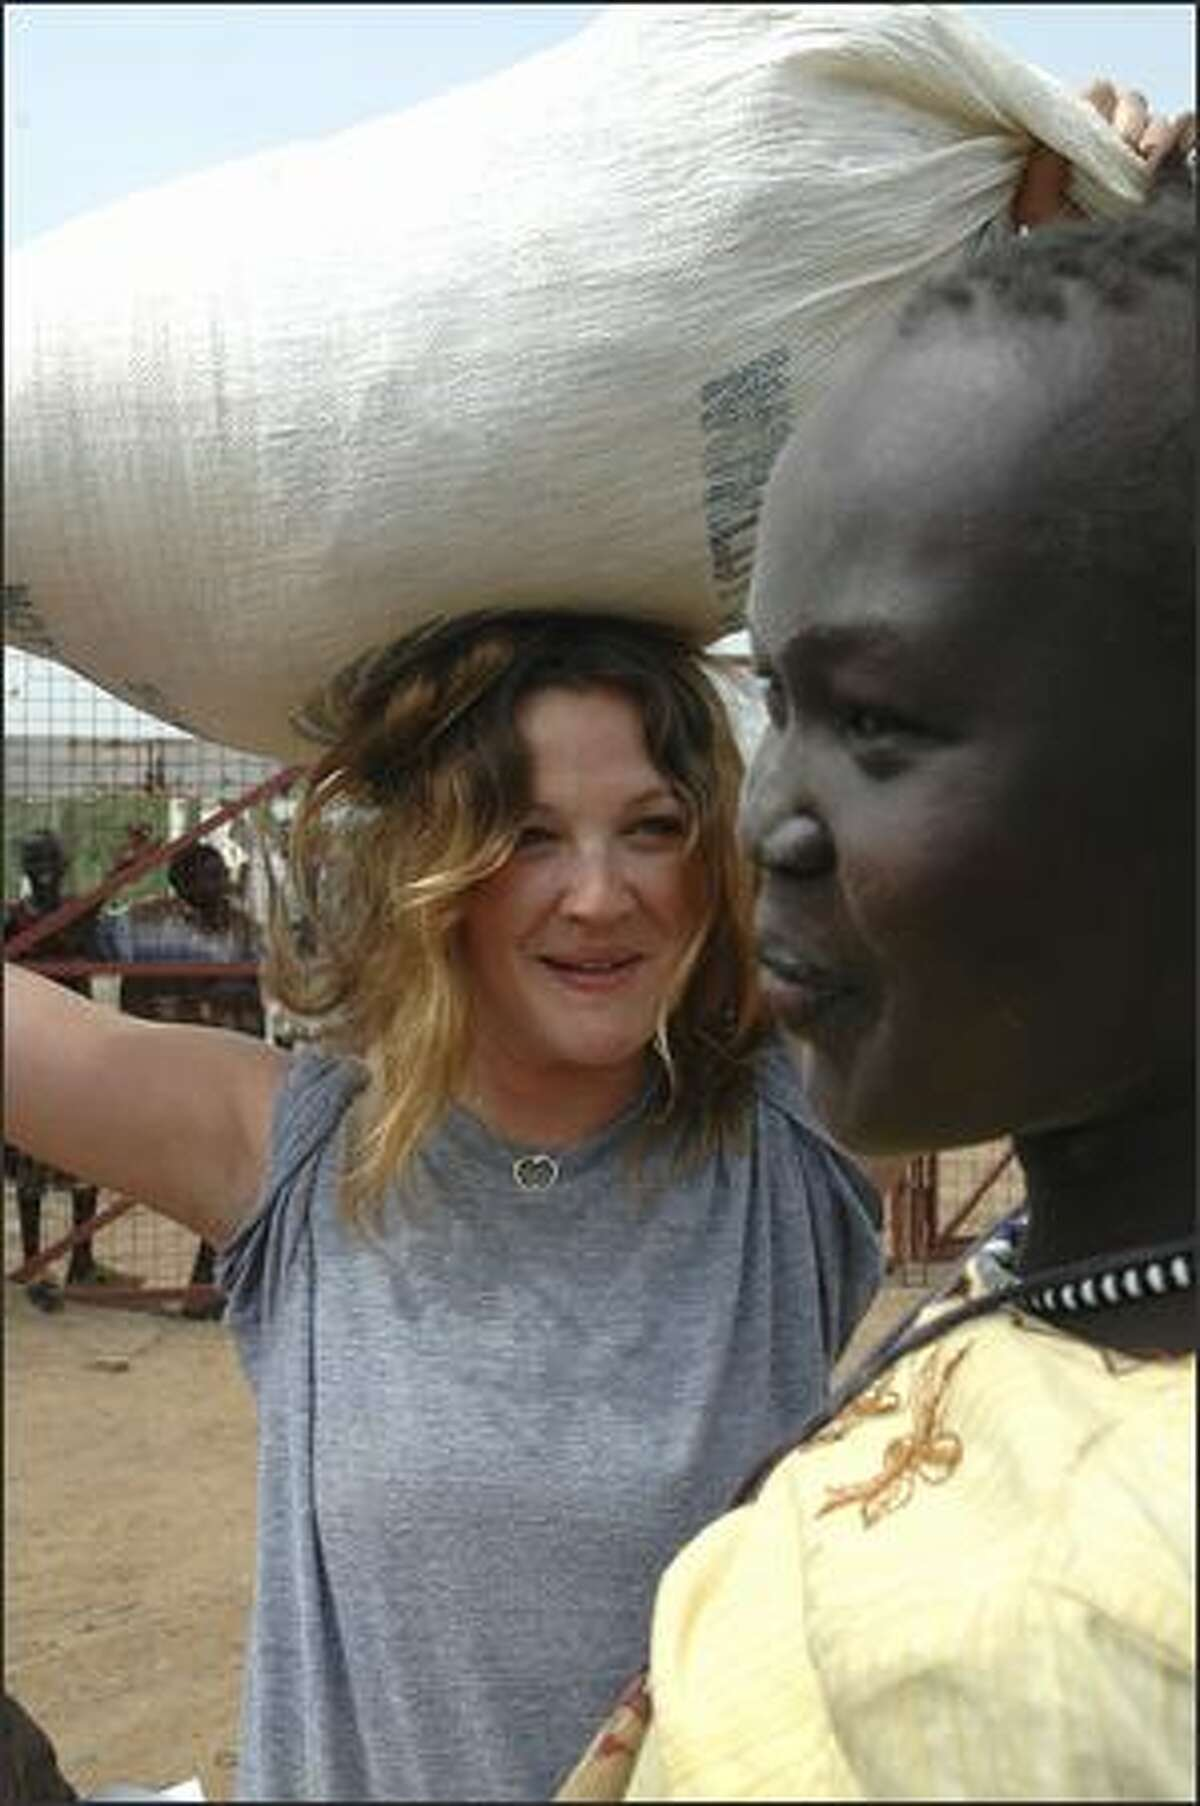 WFP ambassador against hunger actress Drew Barrymore hefts a heavy sack of food onto her head, the way many refugees would carry it home, in Kakuma, Kenya. (AP Photo/WFP, Guillaume Bonn)